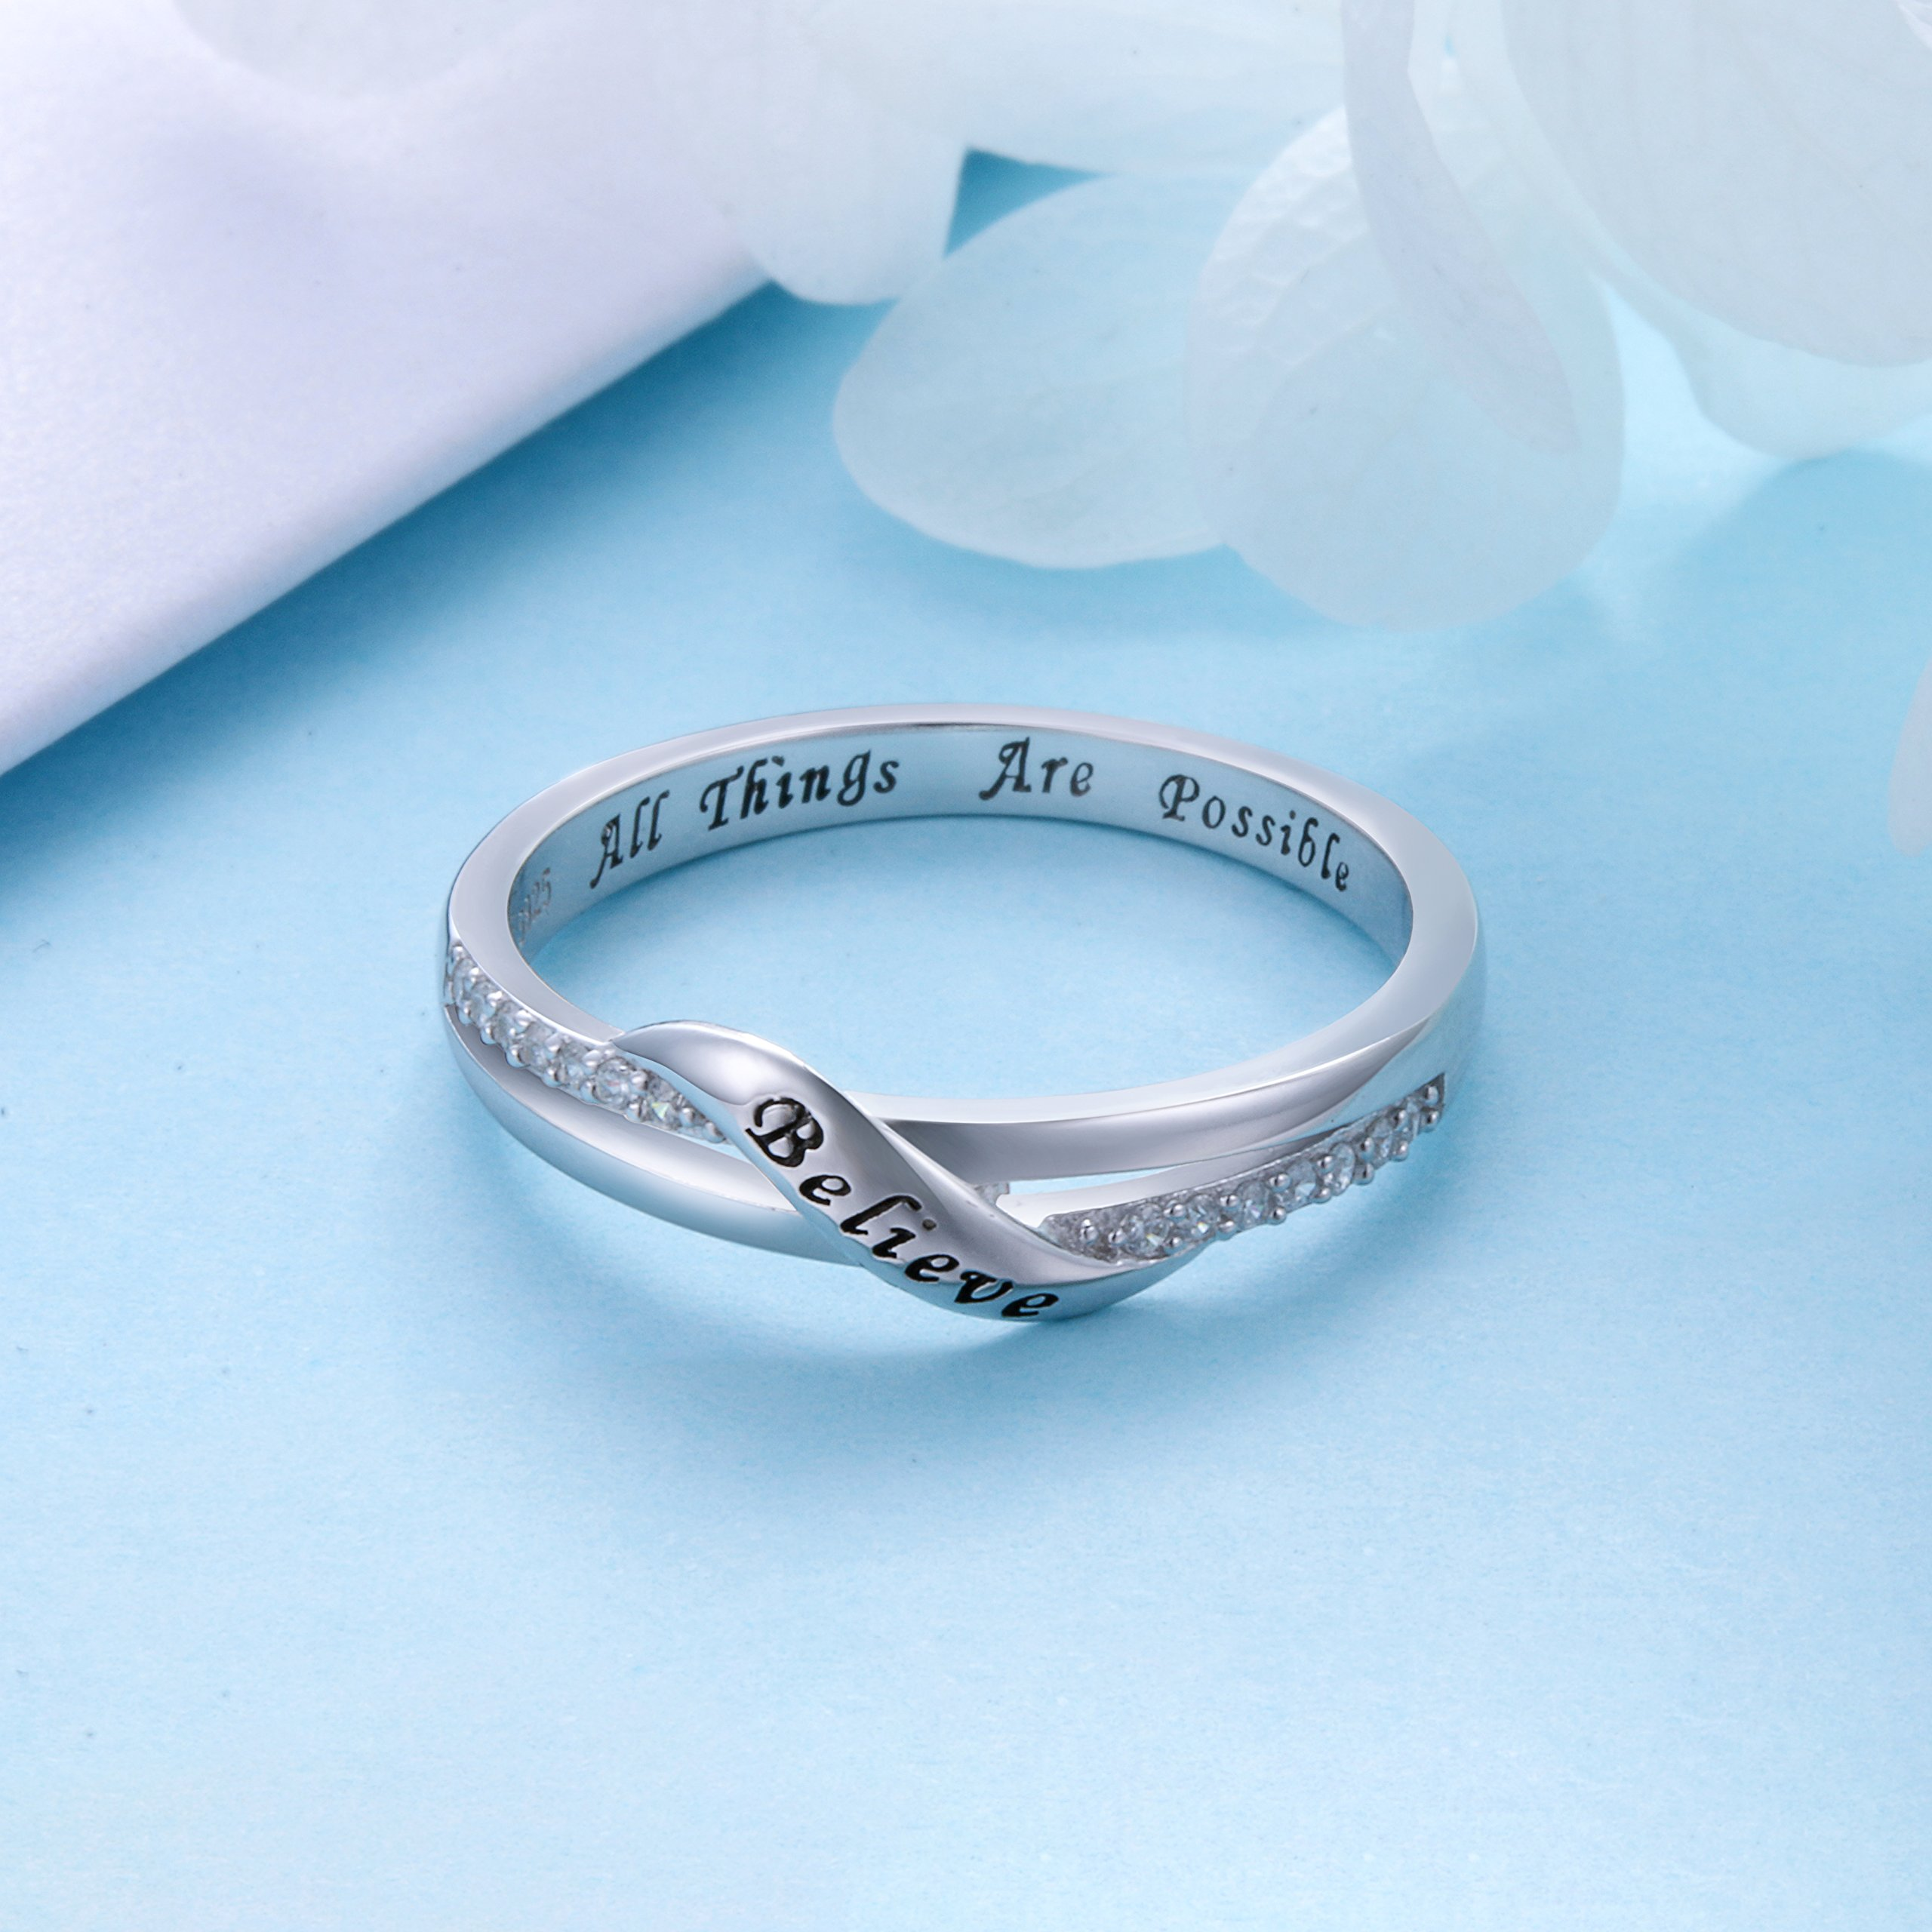 DAOCHONG Inspirational Jewelry Sterling Silver Engraved Believe All Things are Possible Band Ring for Women Girl, Size 6-8 (7) by DAOCHONG (Image #4)